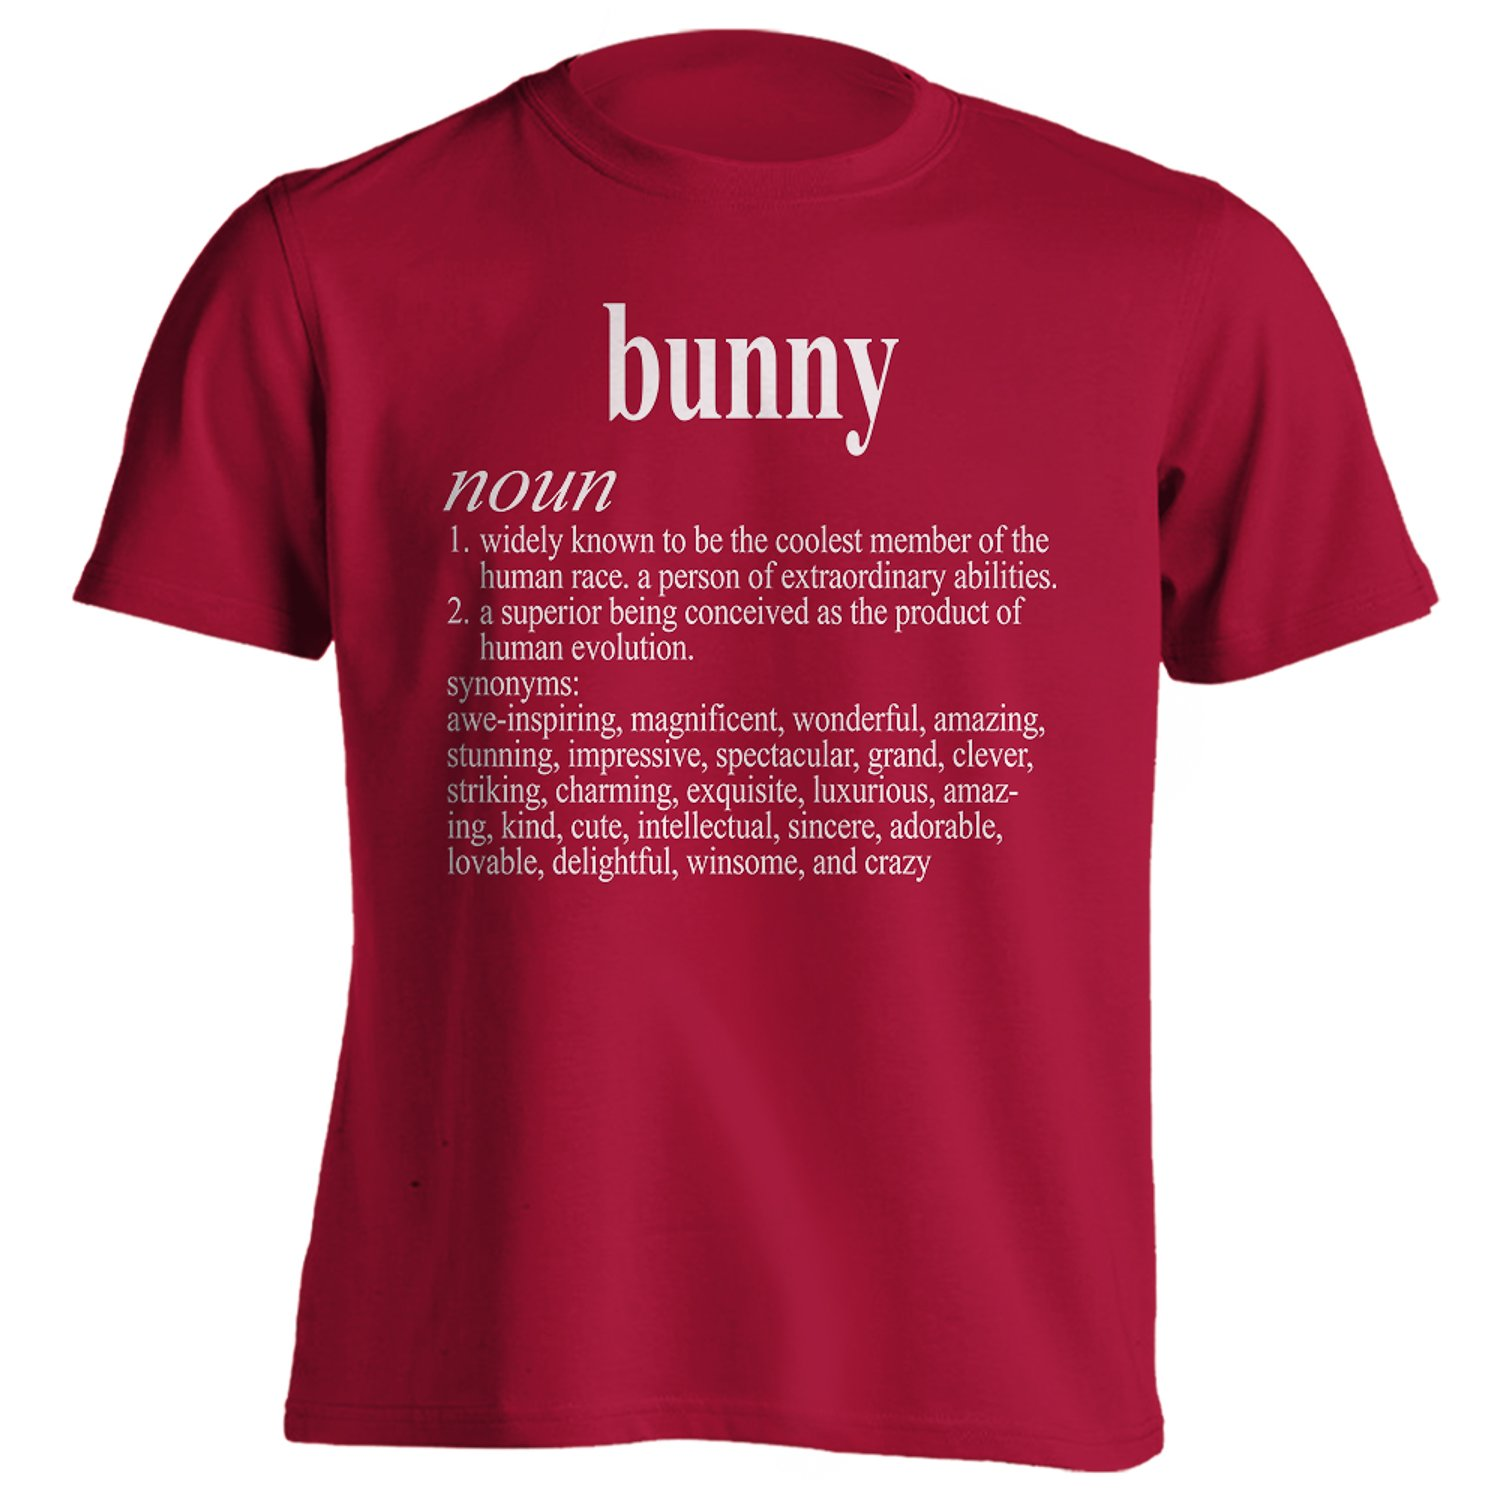 Vintage Style Bunny Funny First Name Definition Adult T-Shirt